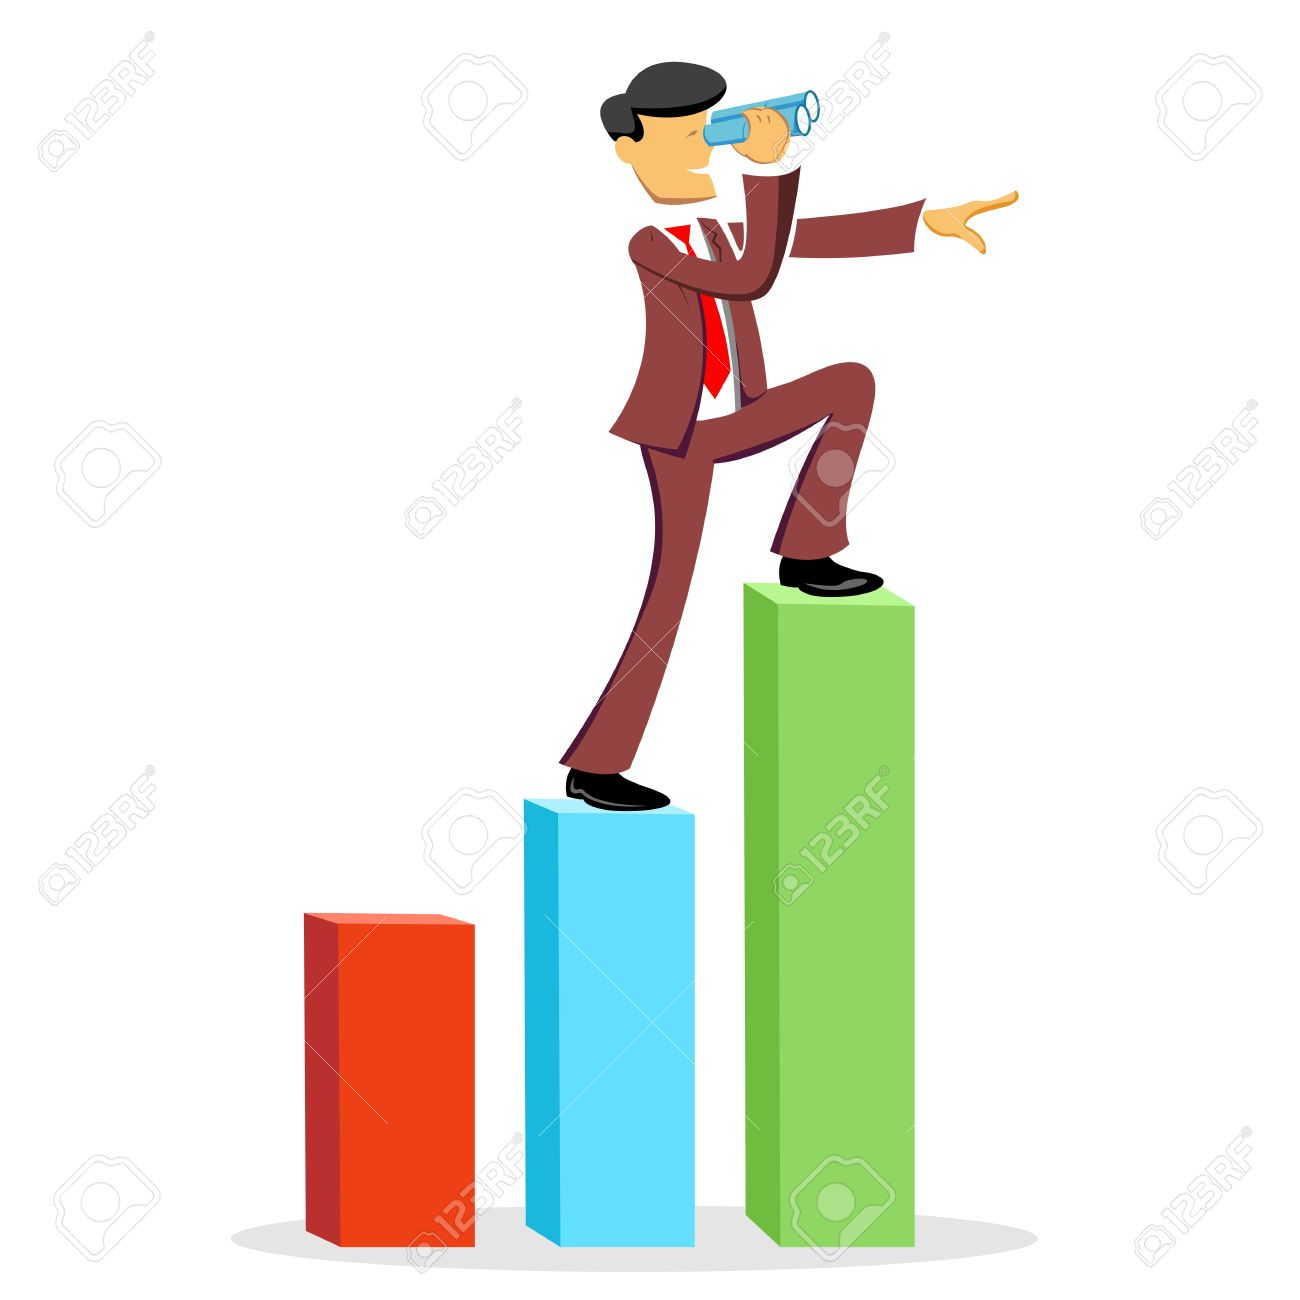 Business Forecast Clipart.